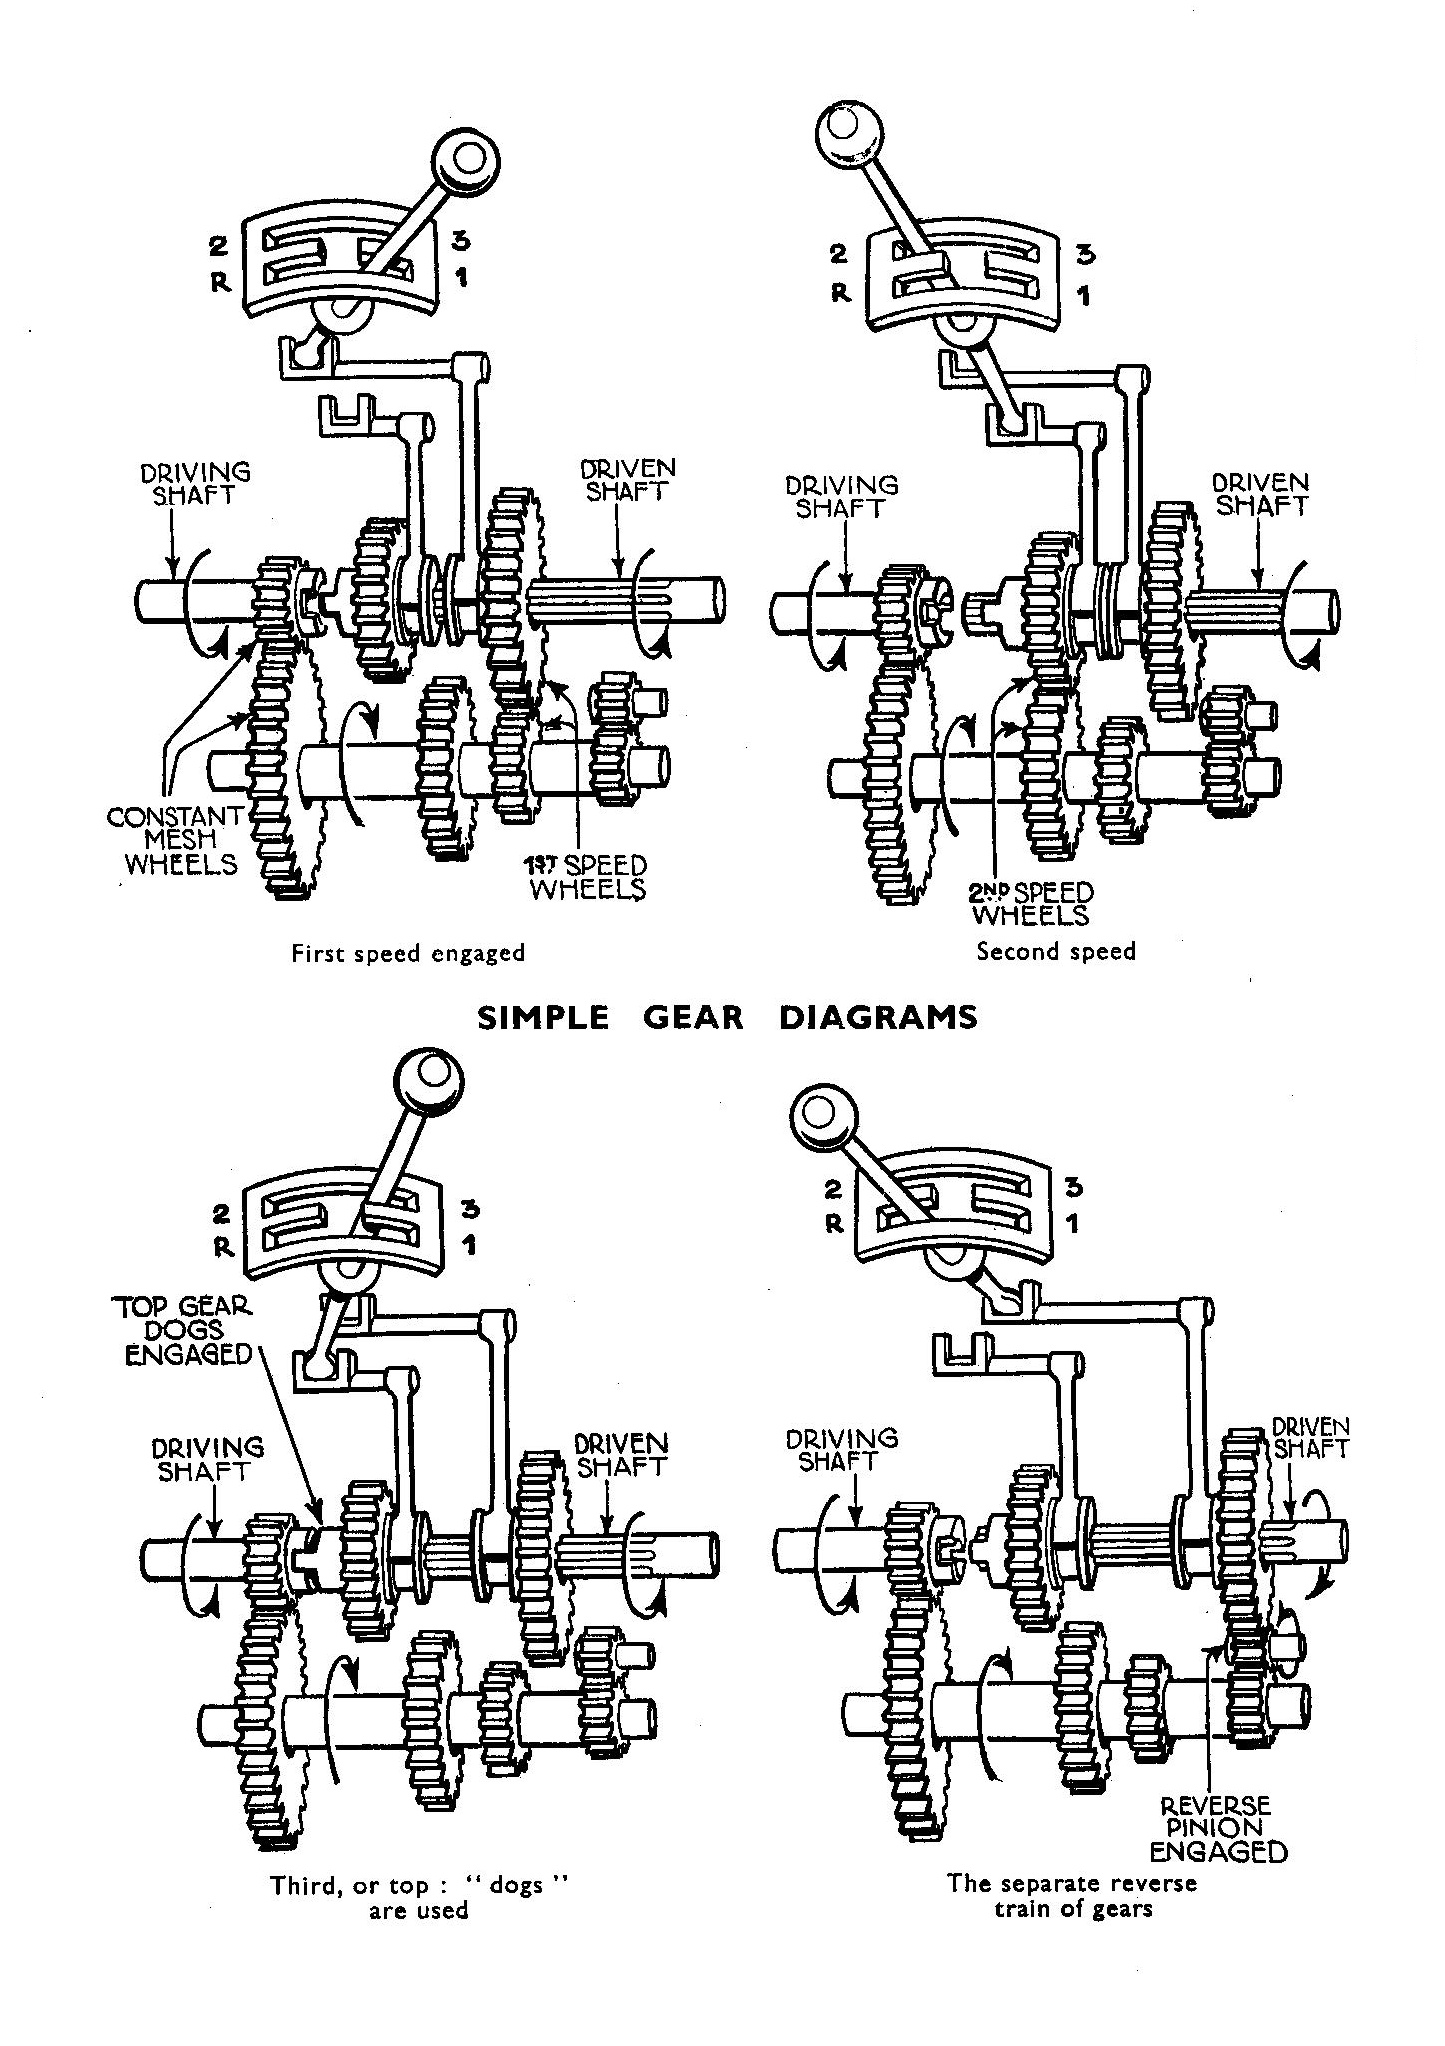 three speed crash gearbox schematic autocar handbook 13th ed 1935 jpg 1115